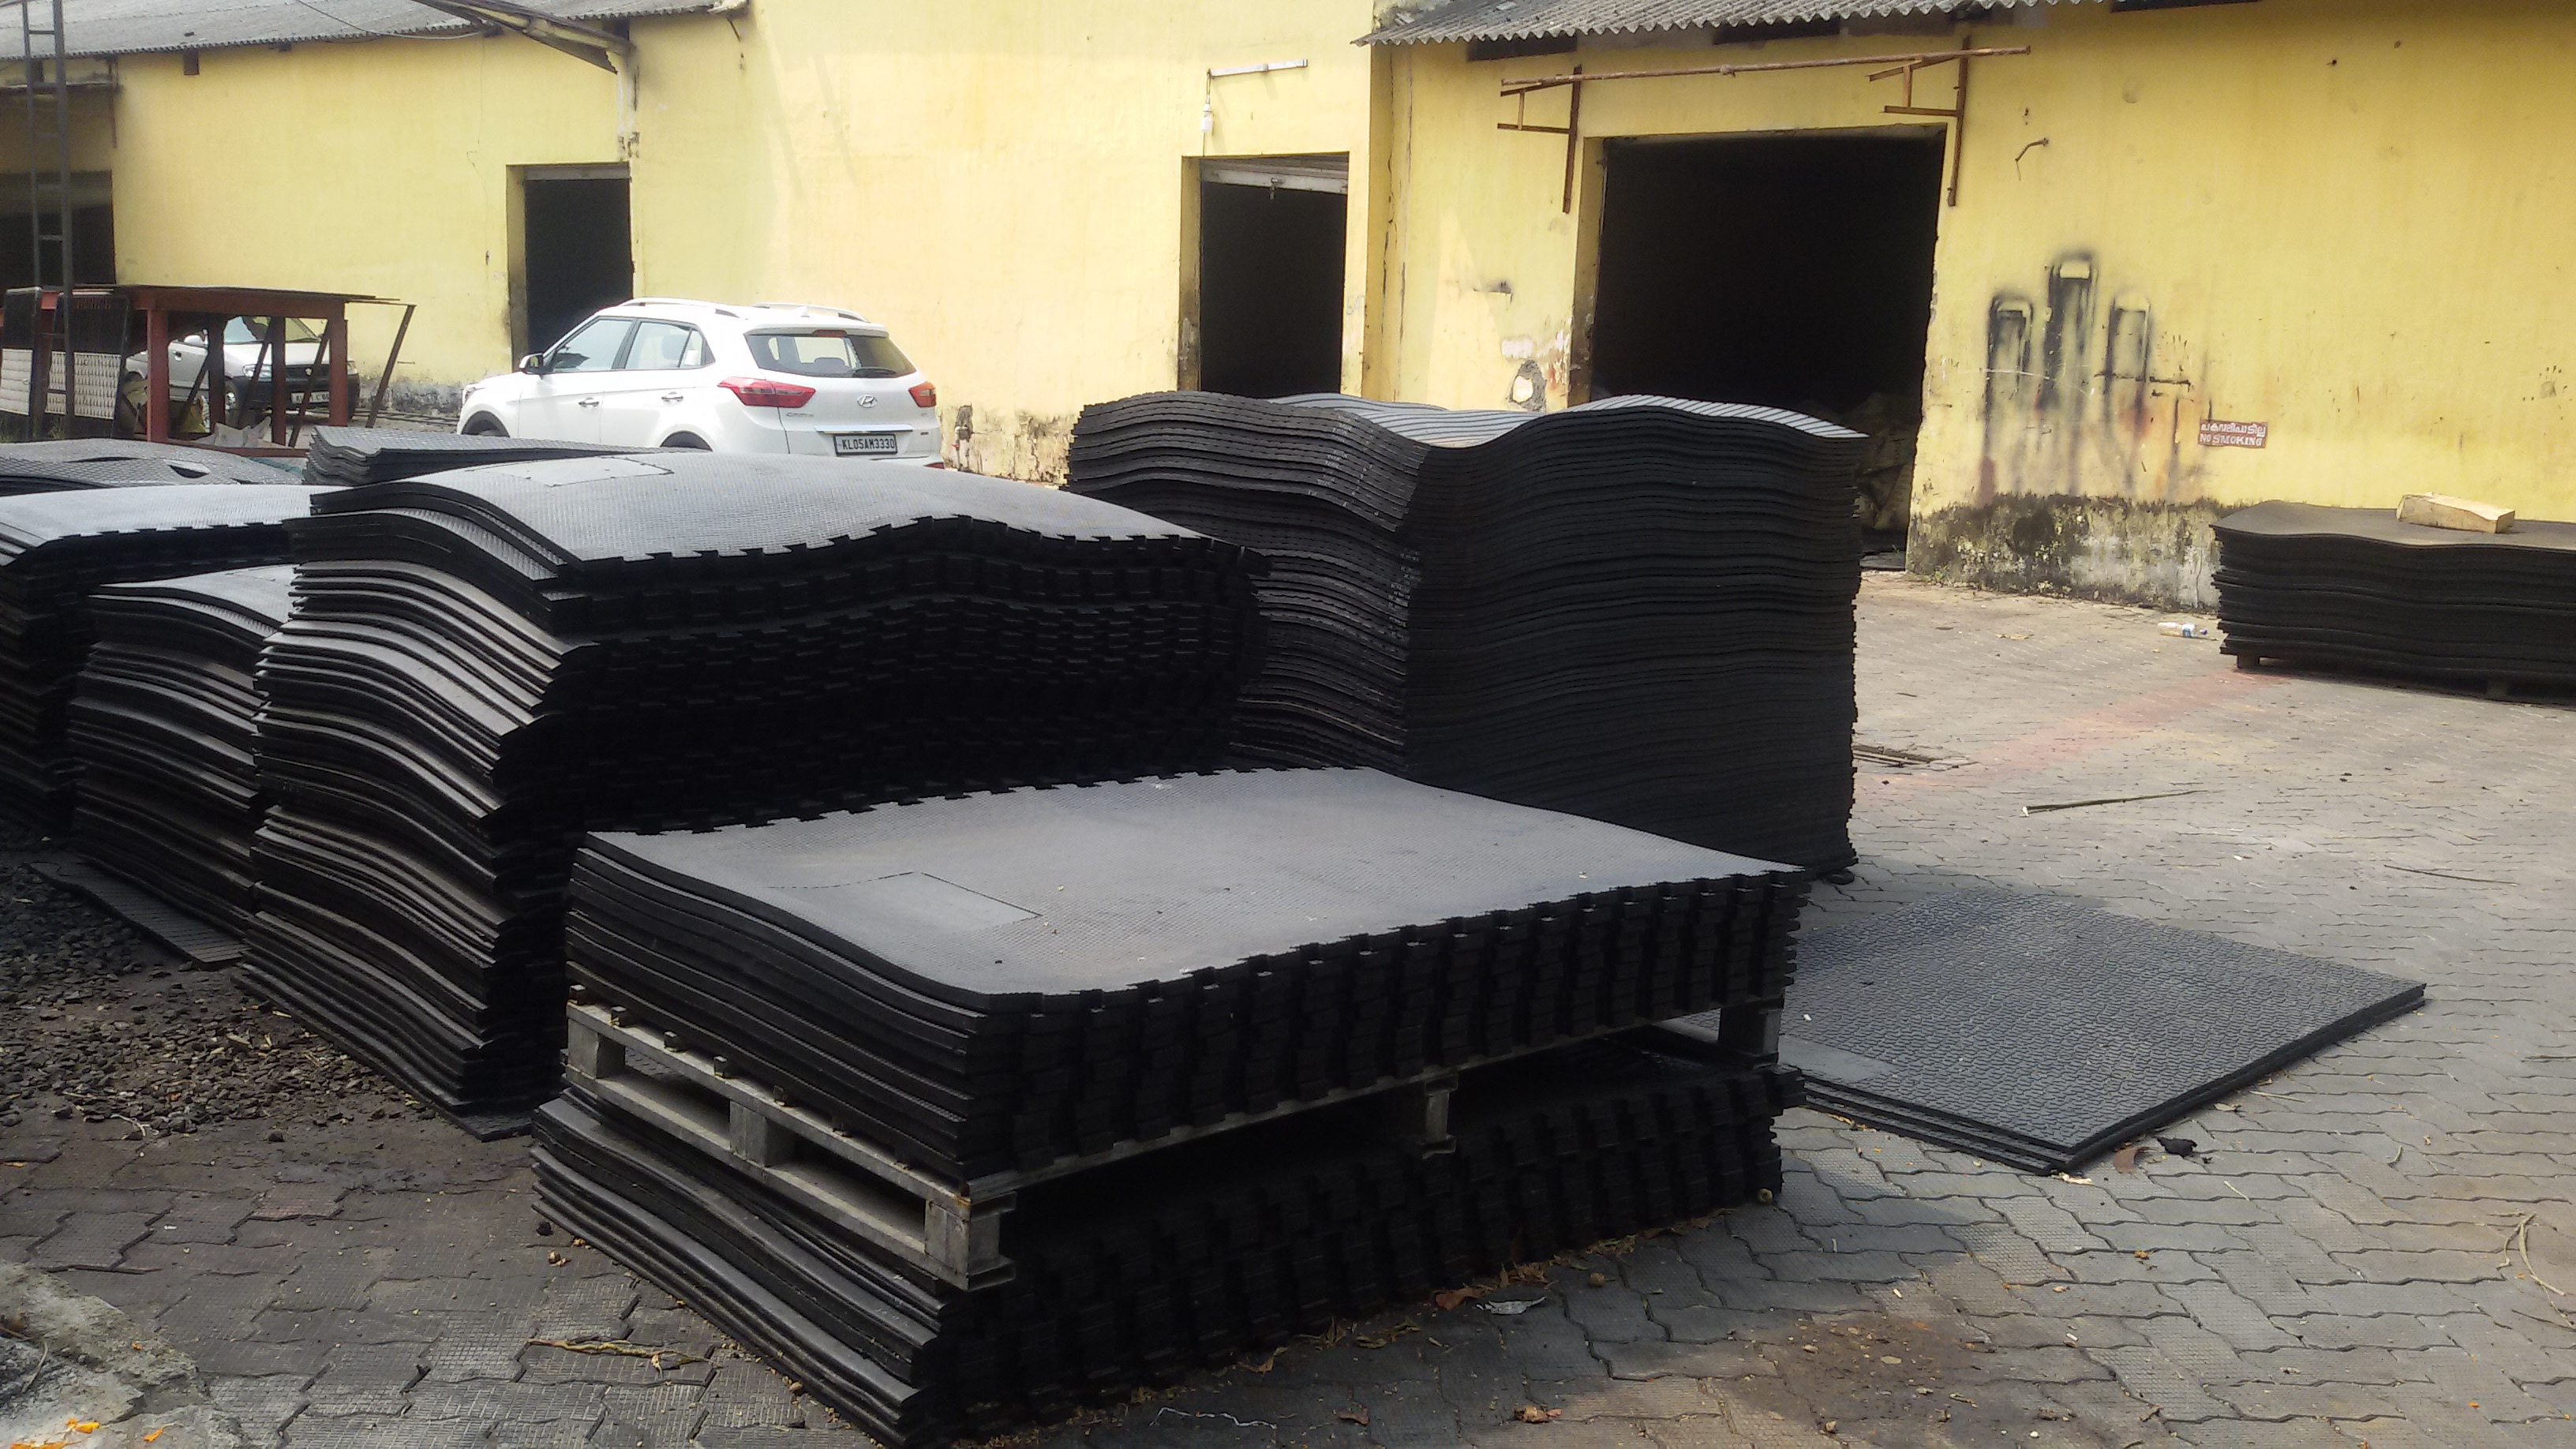 manufacturers com cow anti suppliers mat at mats alibaba and showroom rubber slip stable